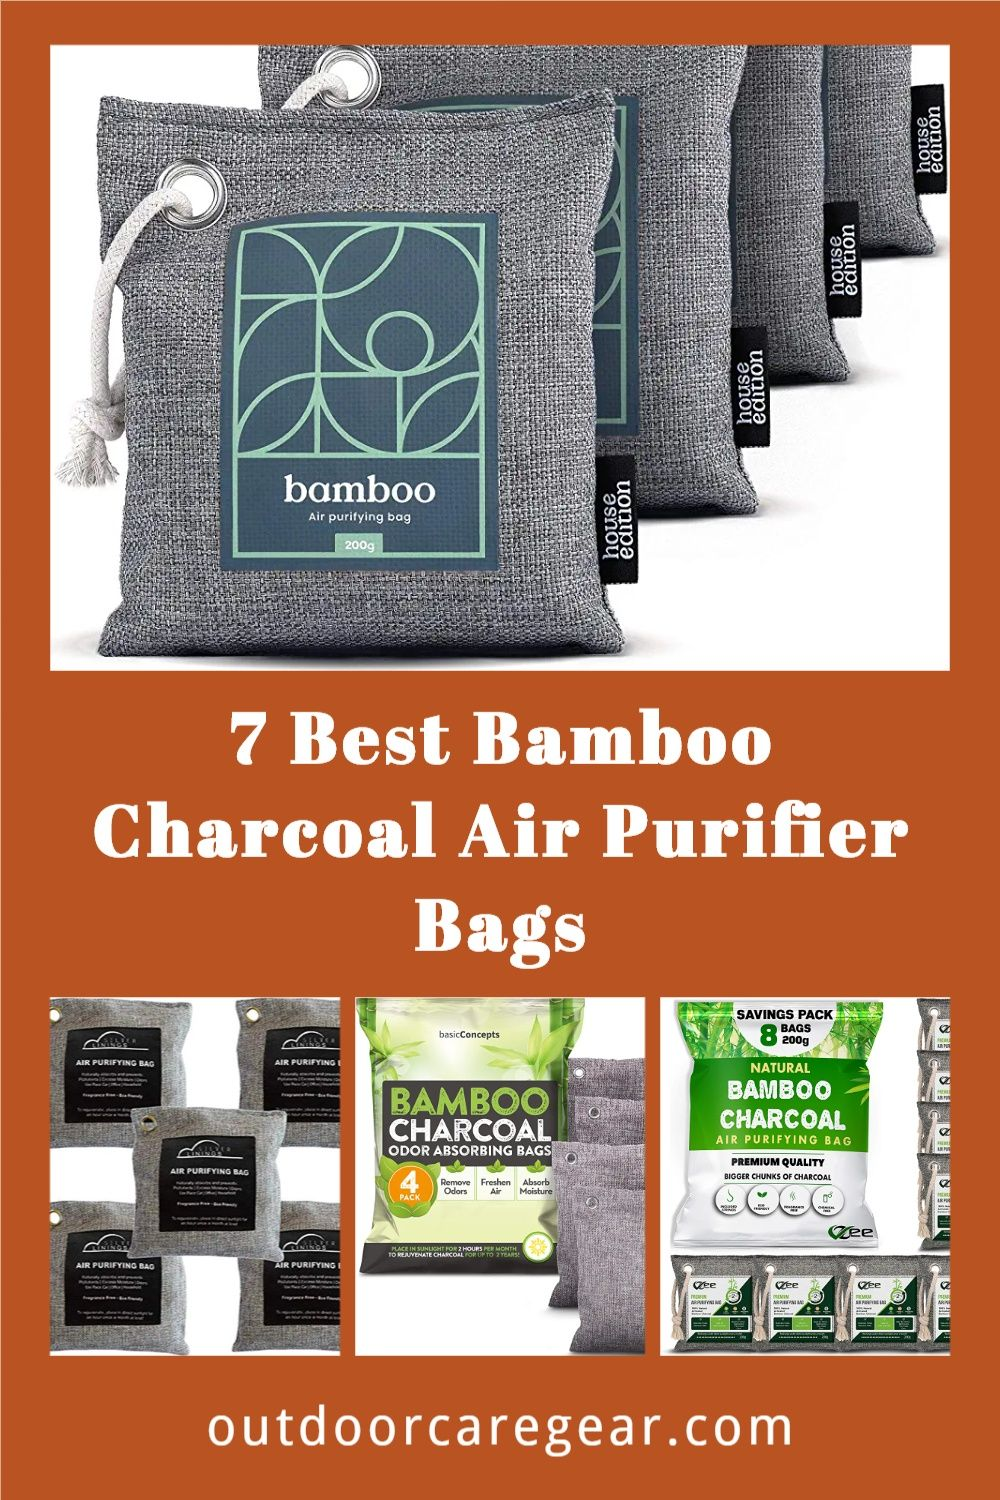 7 Best Bamboo Charcoal Air Purifier Bags